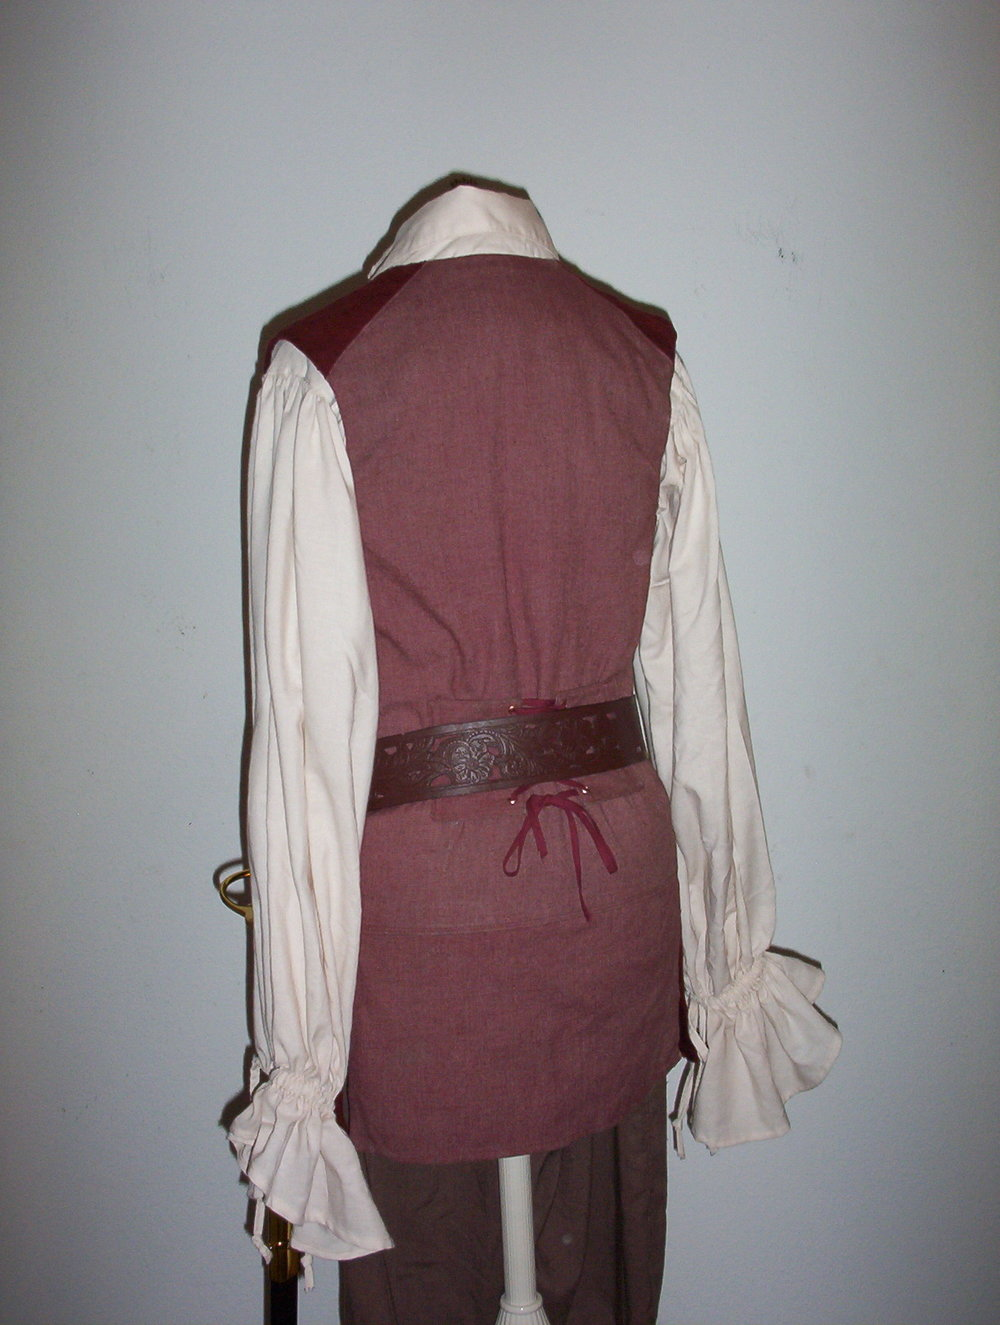 Pirate costume2shiftanddressform 040.jpg